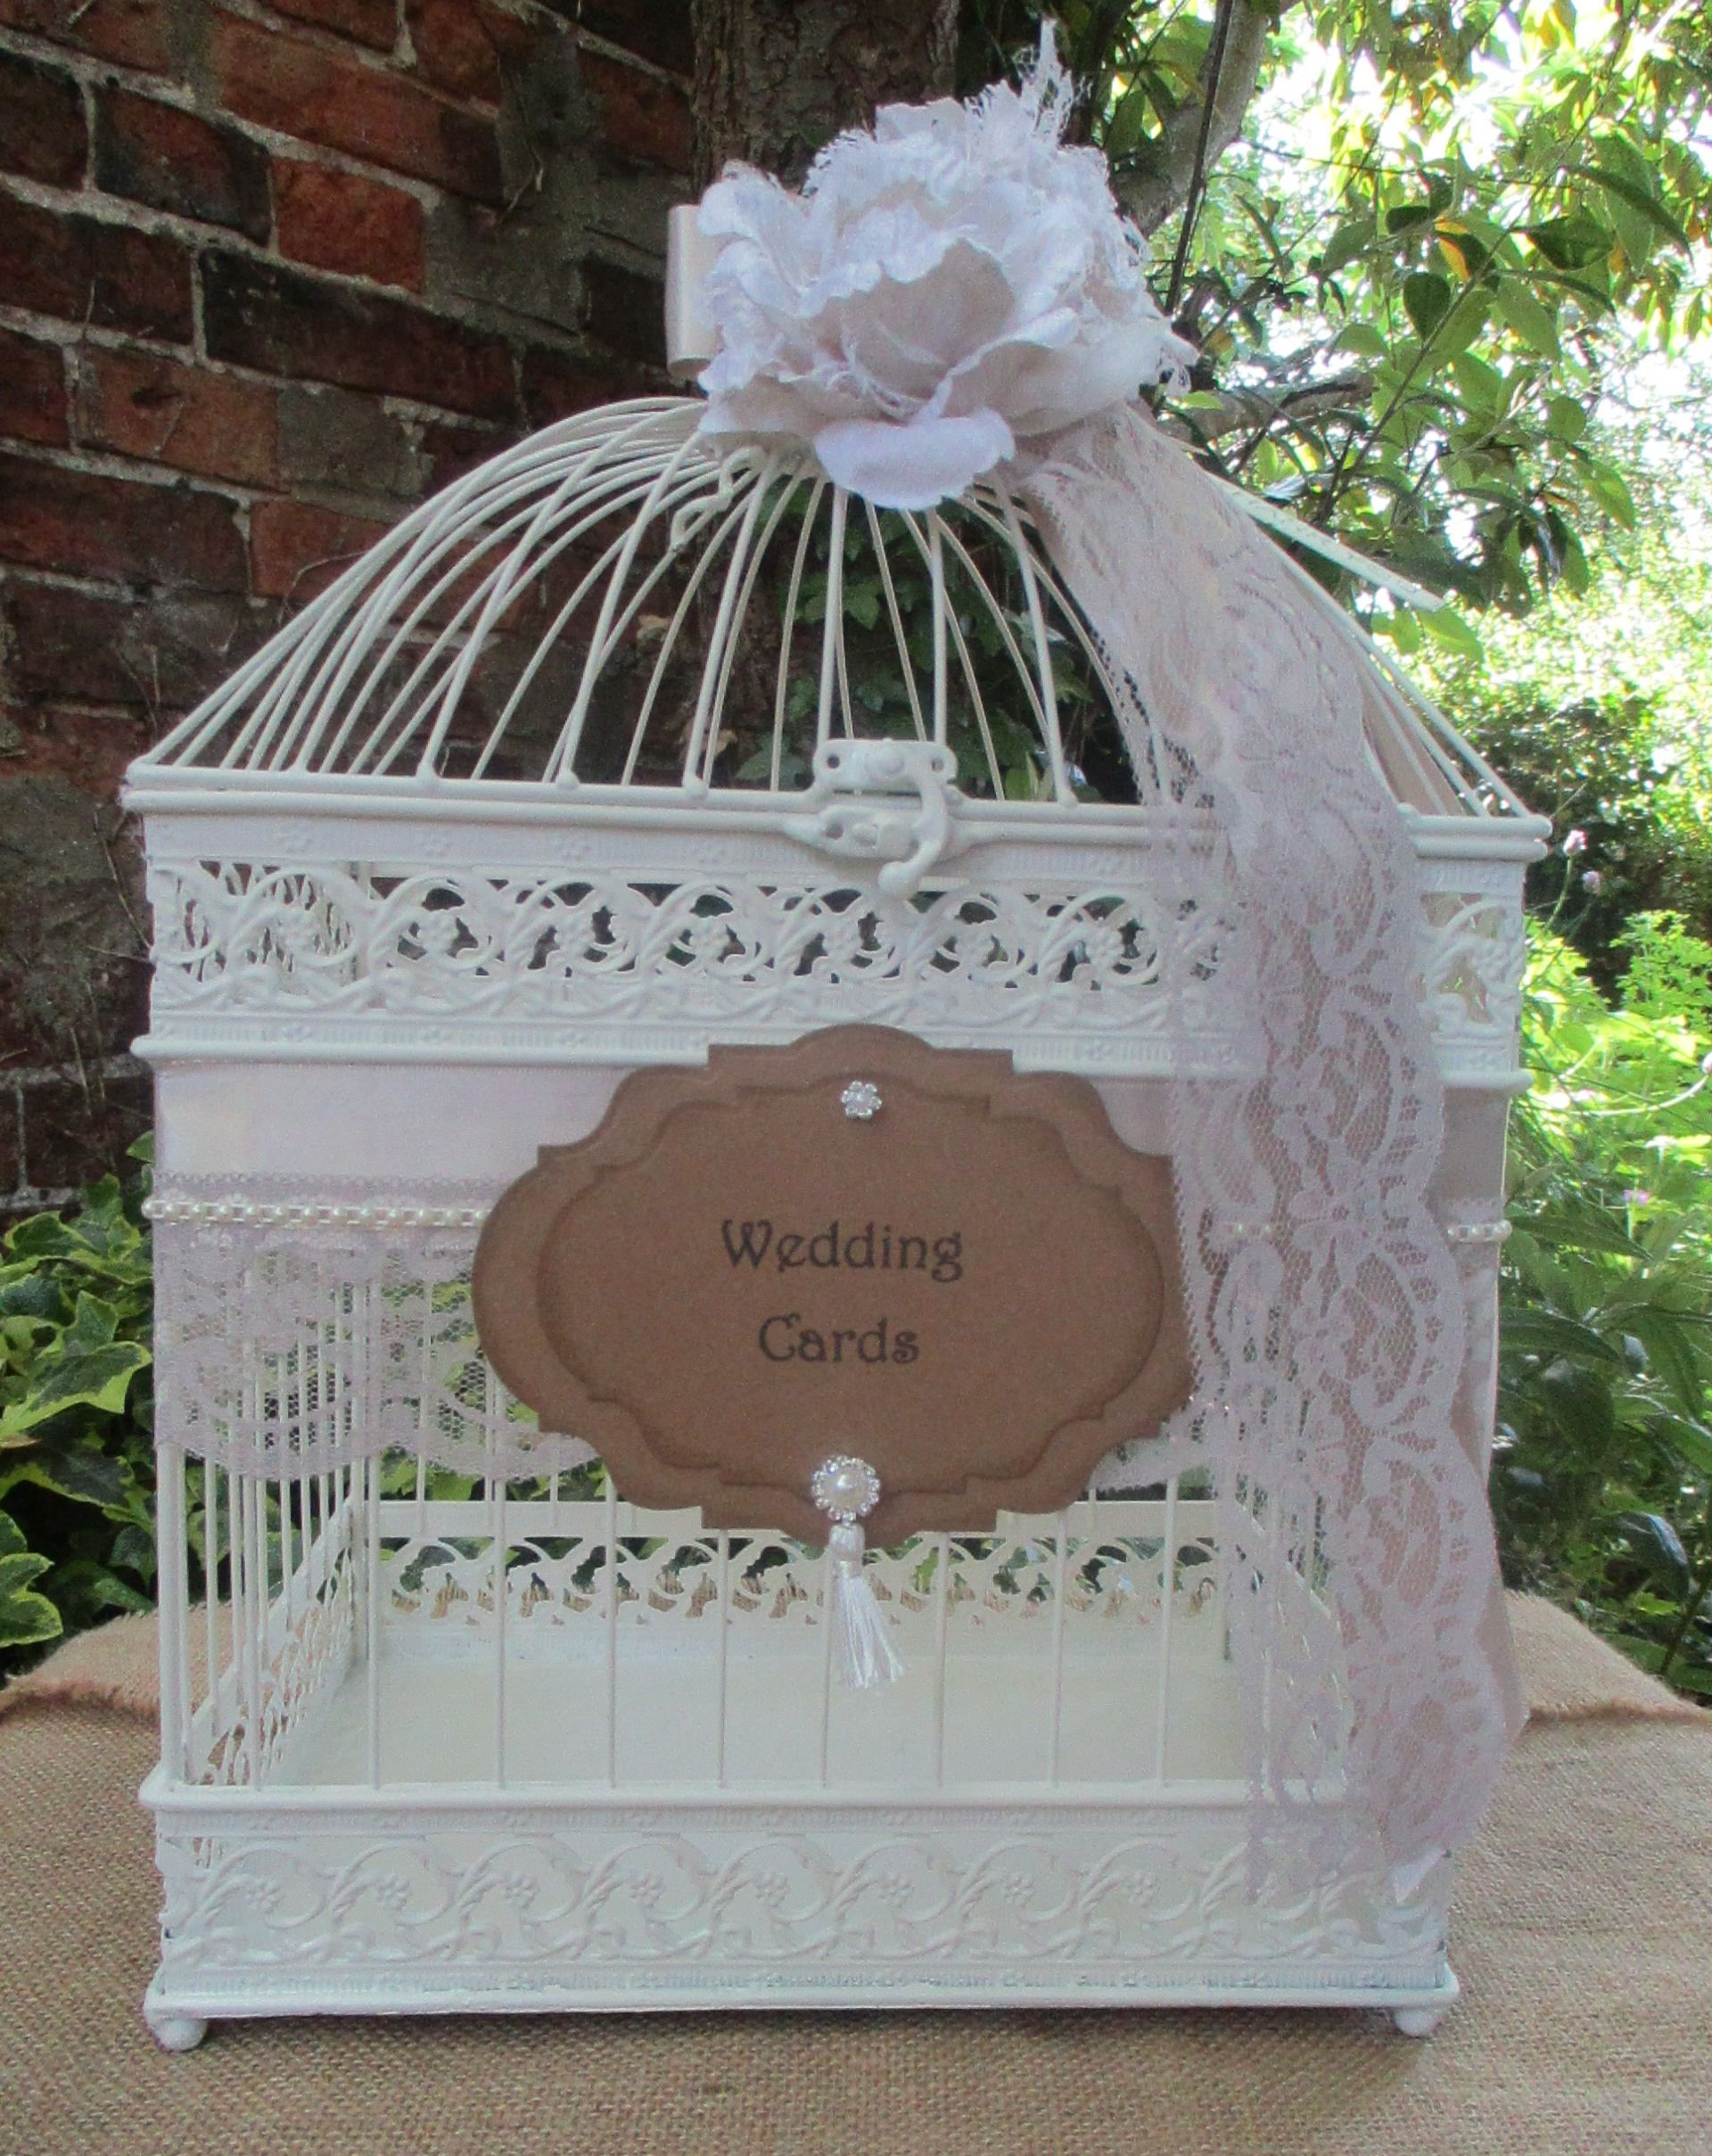 Birdcage Wedding Card Holder Post Box Card Sign Gift Etsy Wedding Cards Wedding Birdcage Wedding Card Post Box